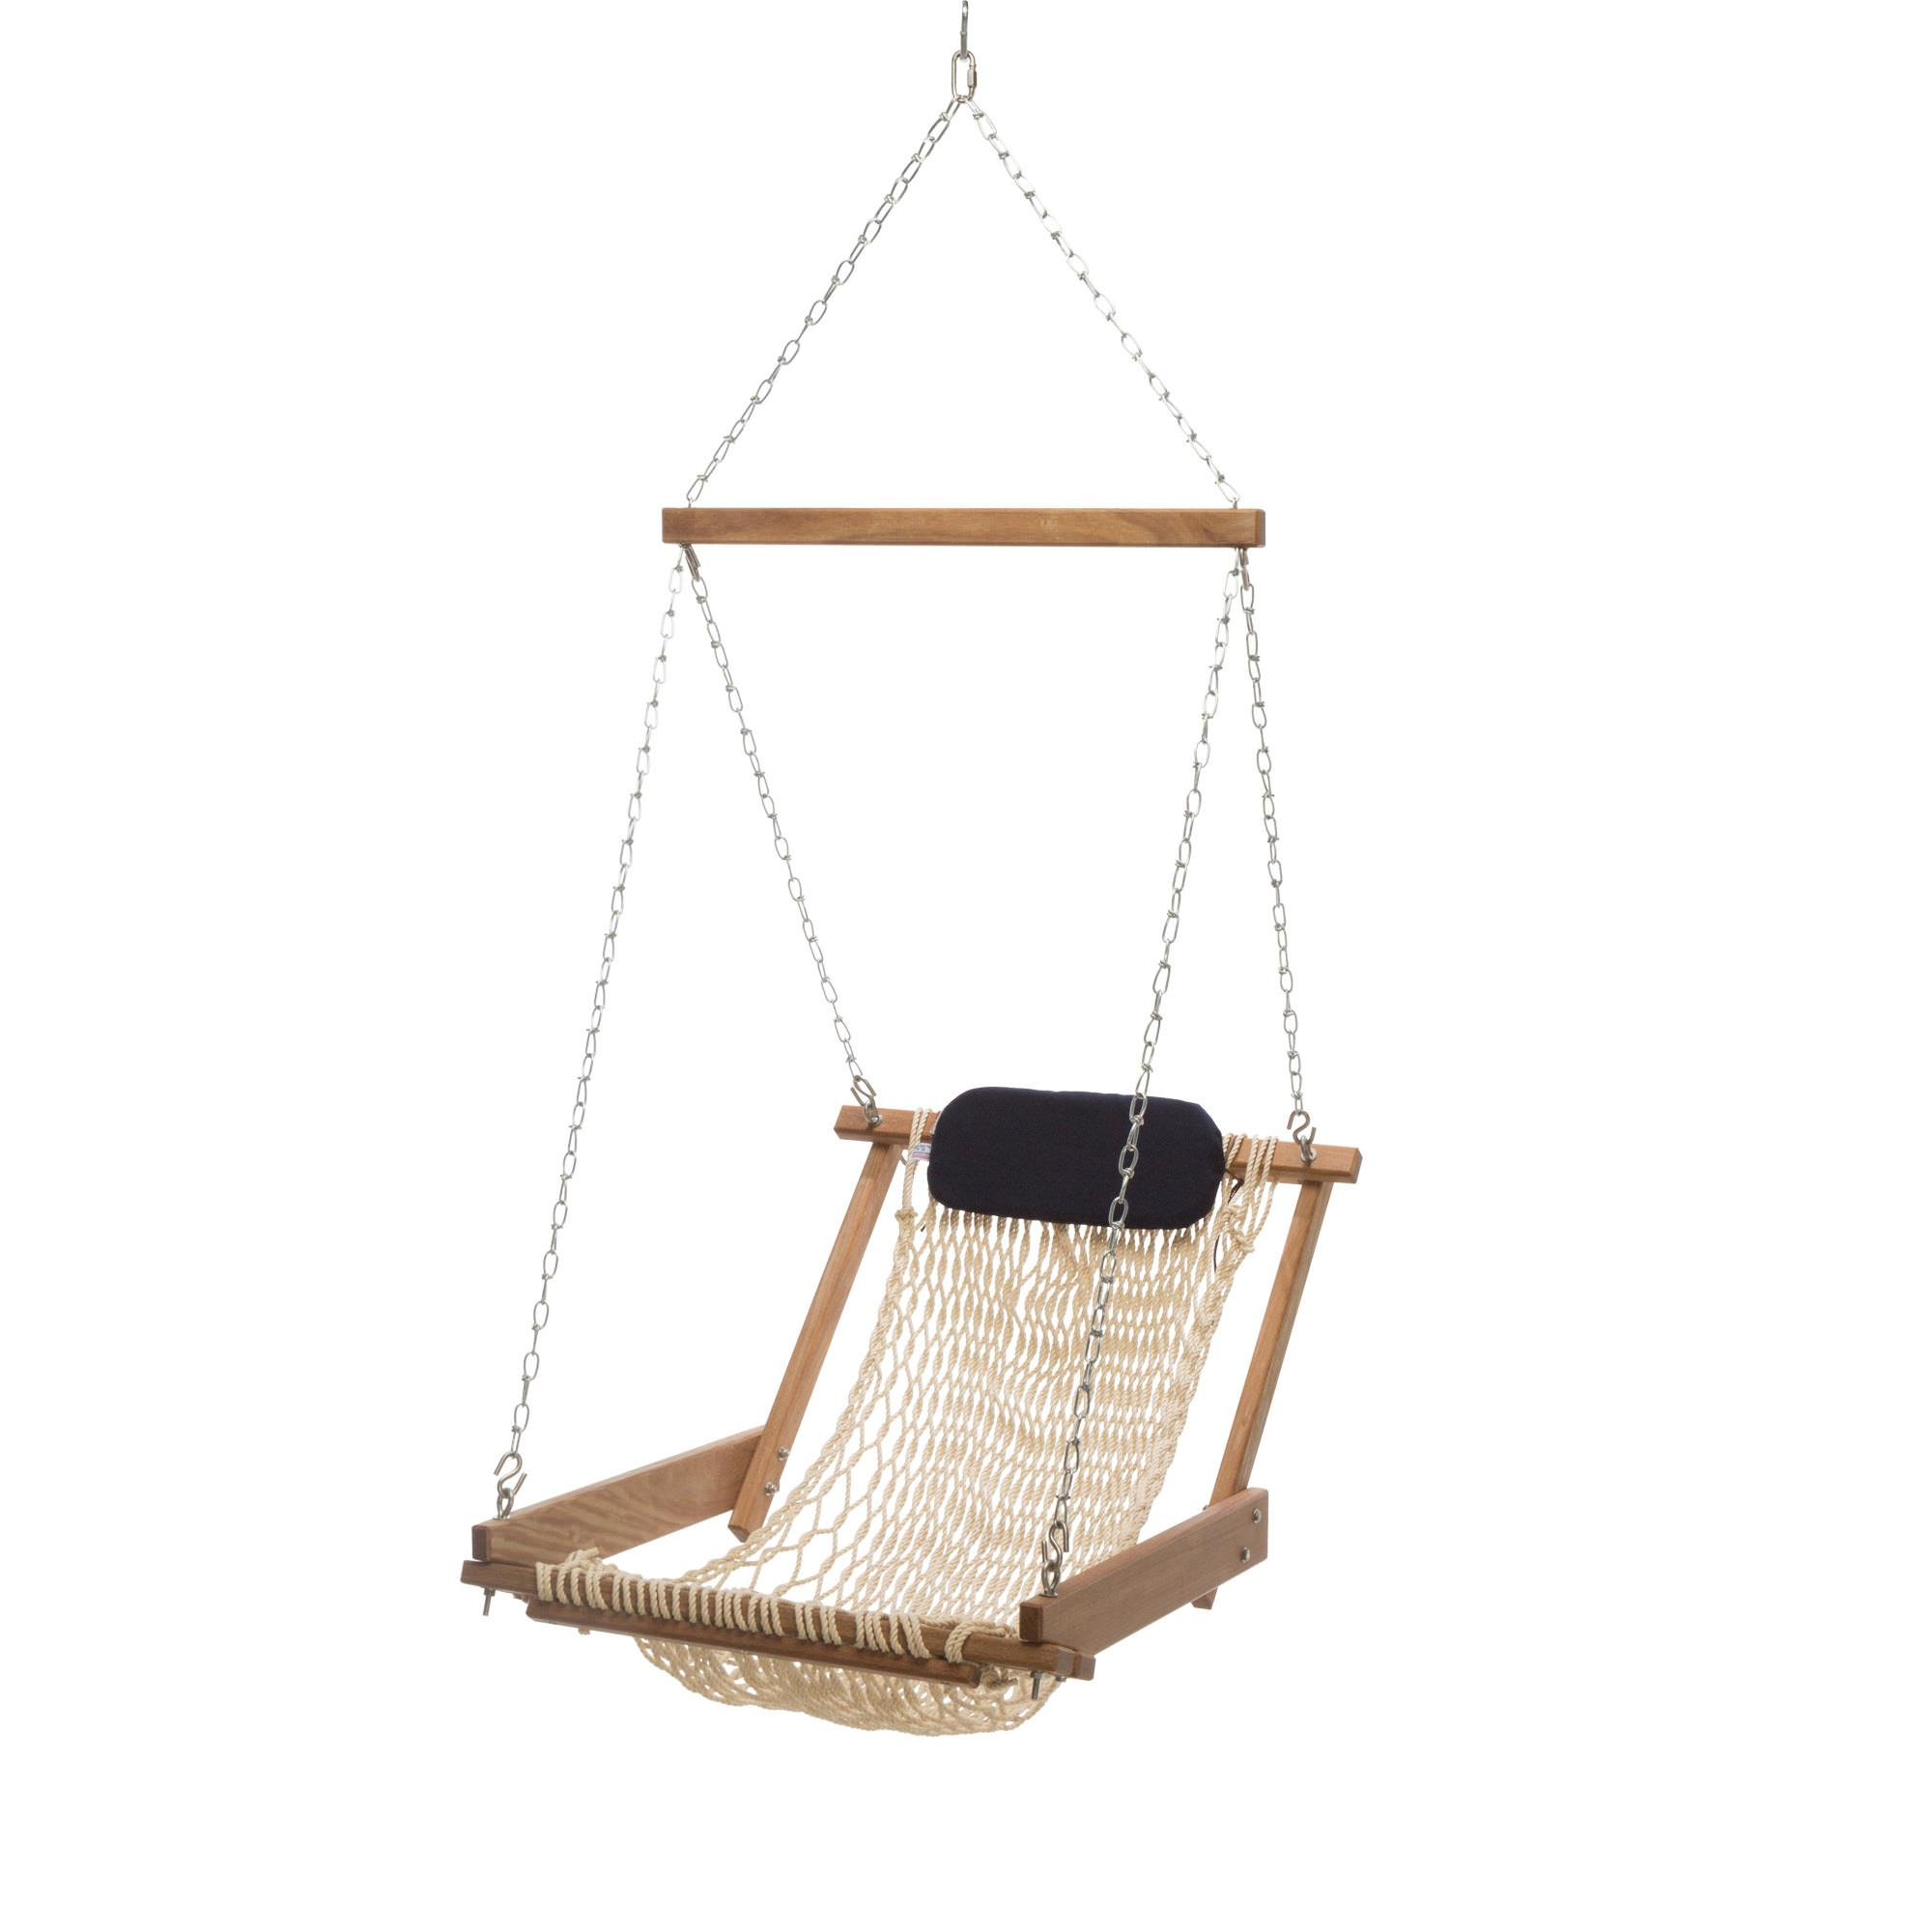 canvas free white bar with chains large hammocks hammock tassels hanging heavenly and half spreader kit itm